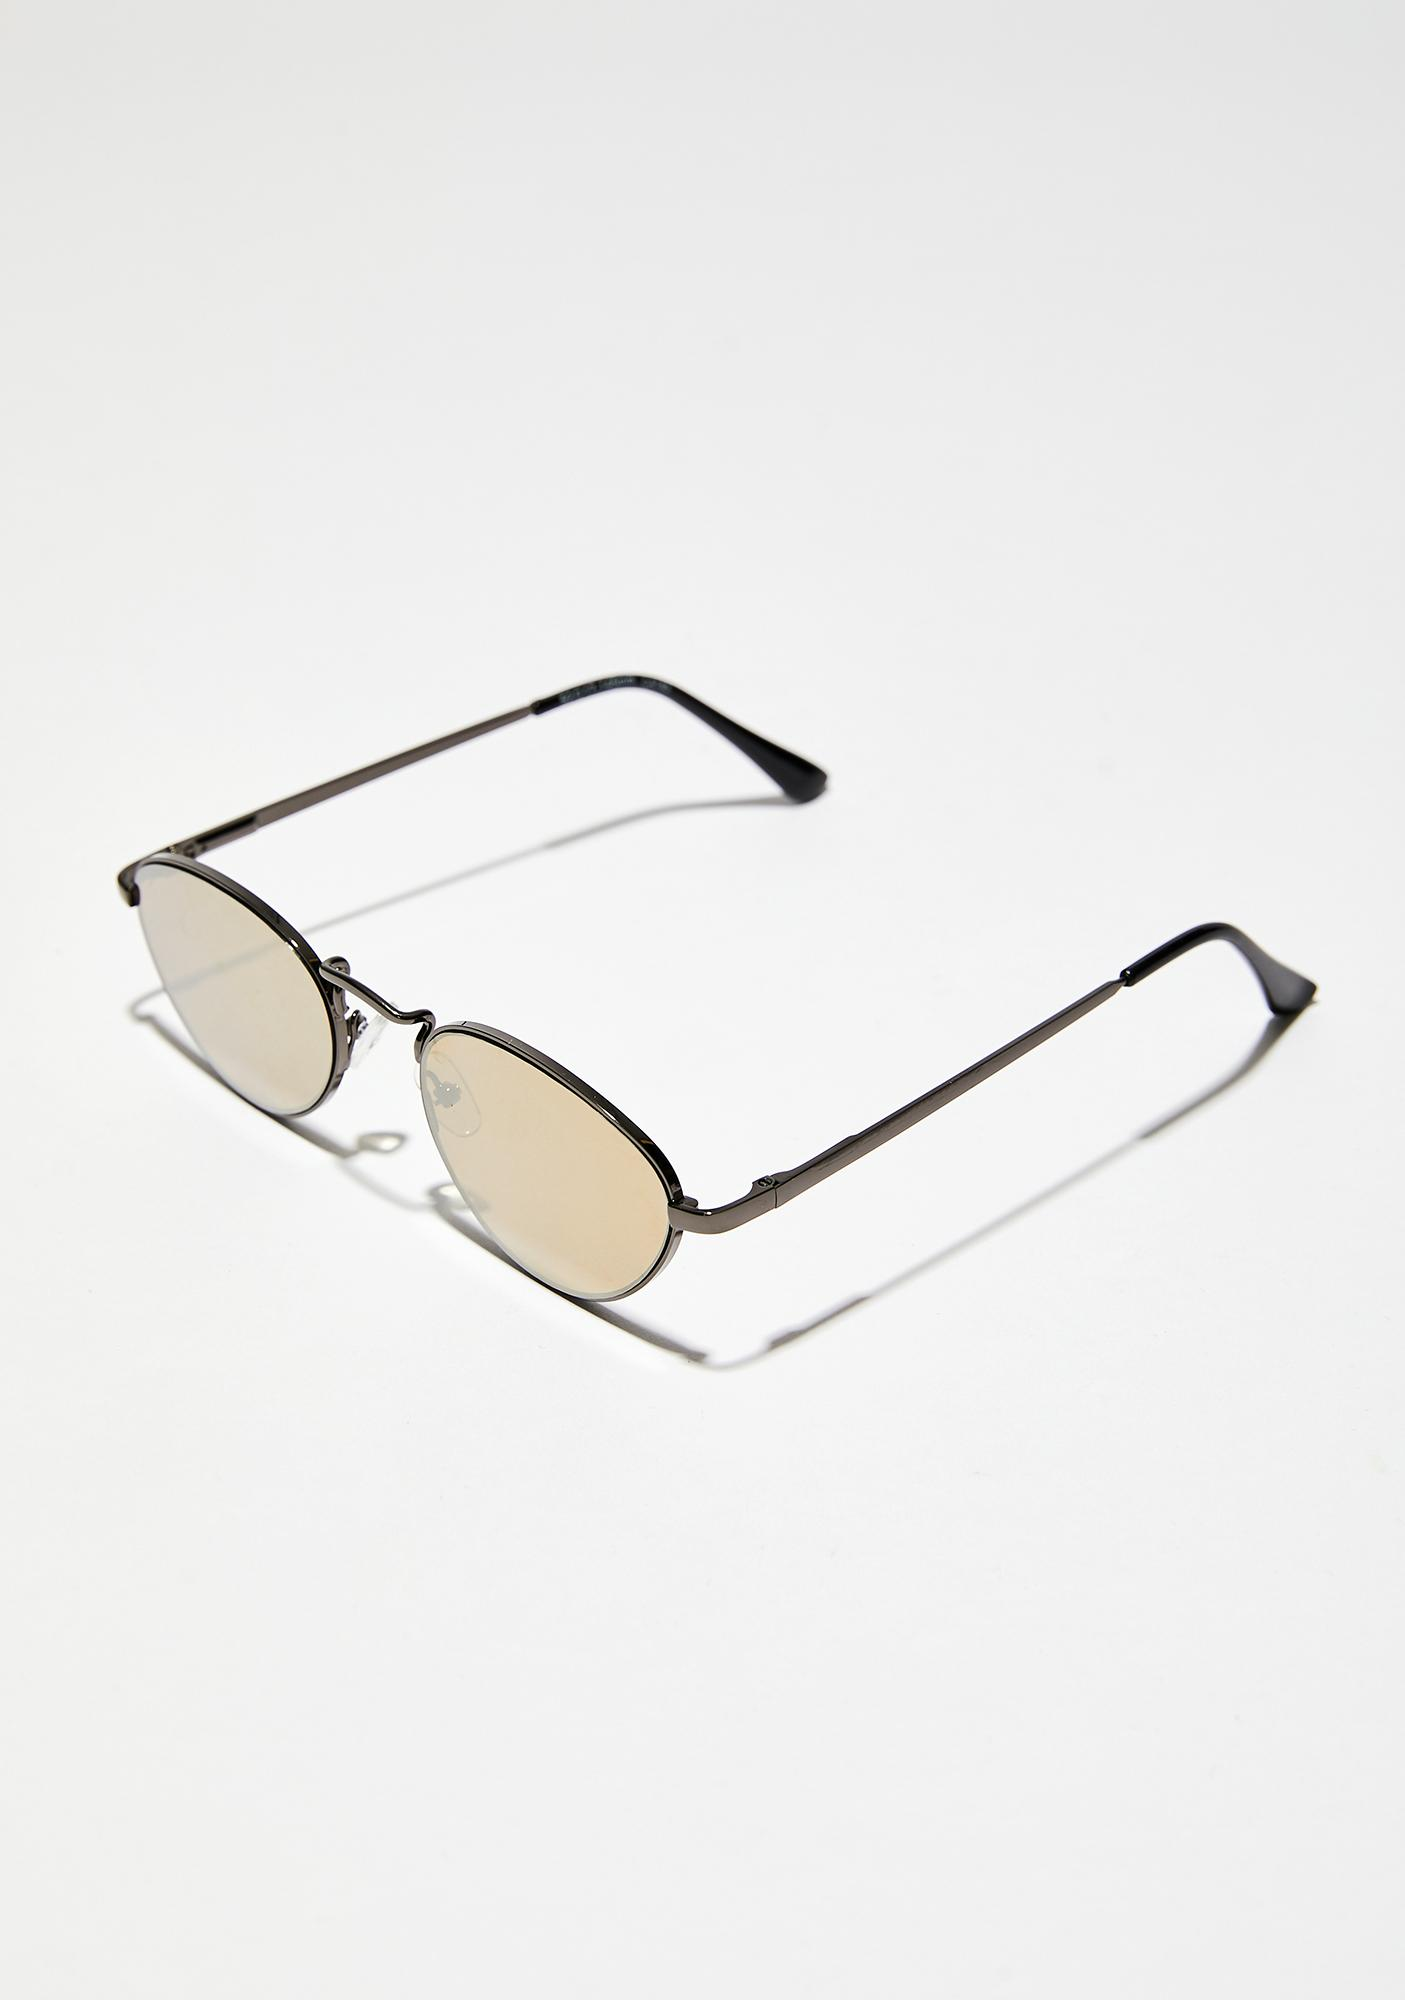 In The Mood Mirrored Sunglasses